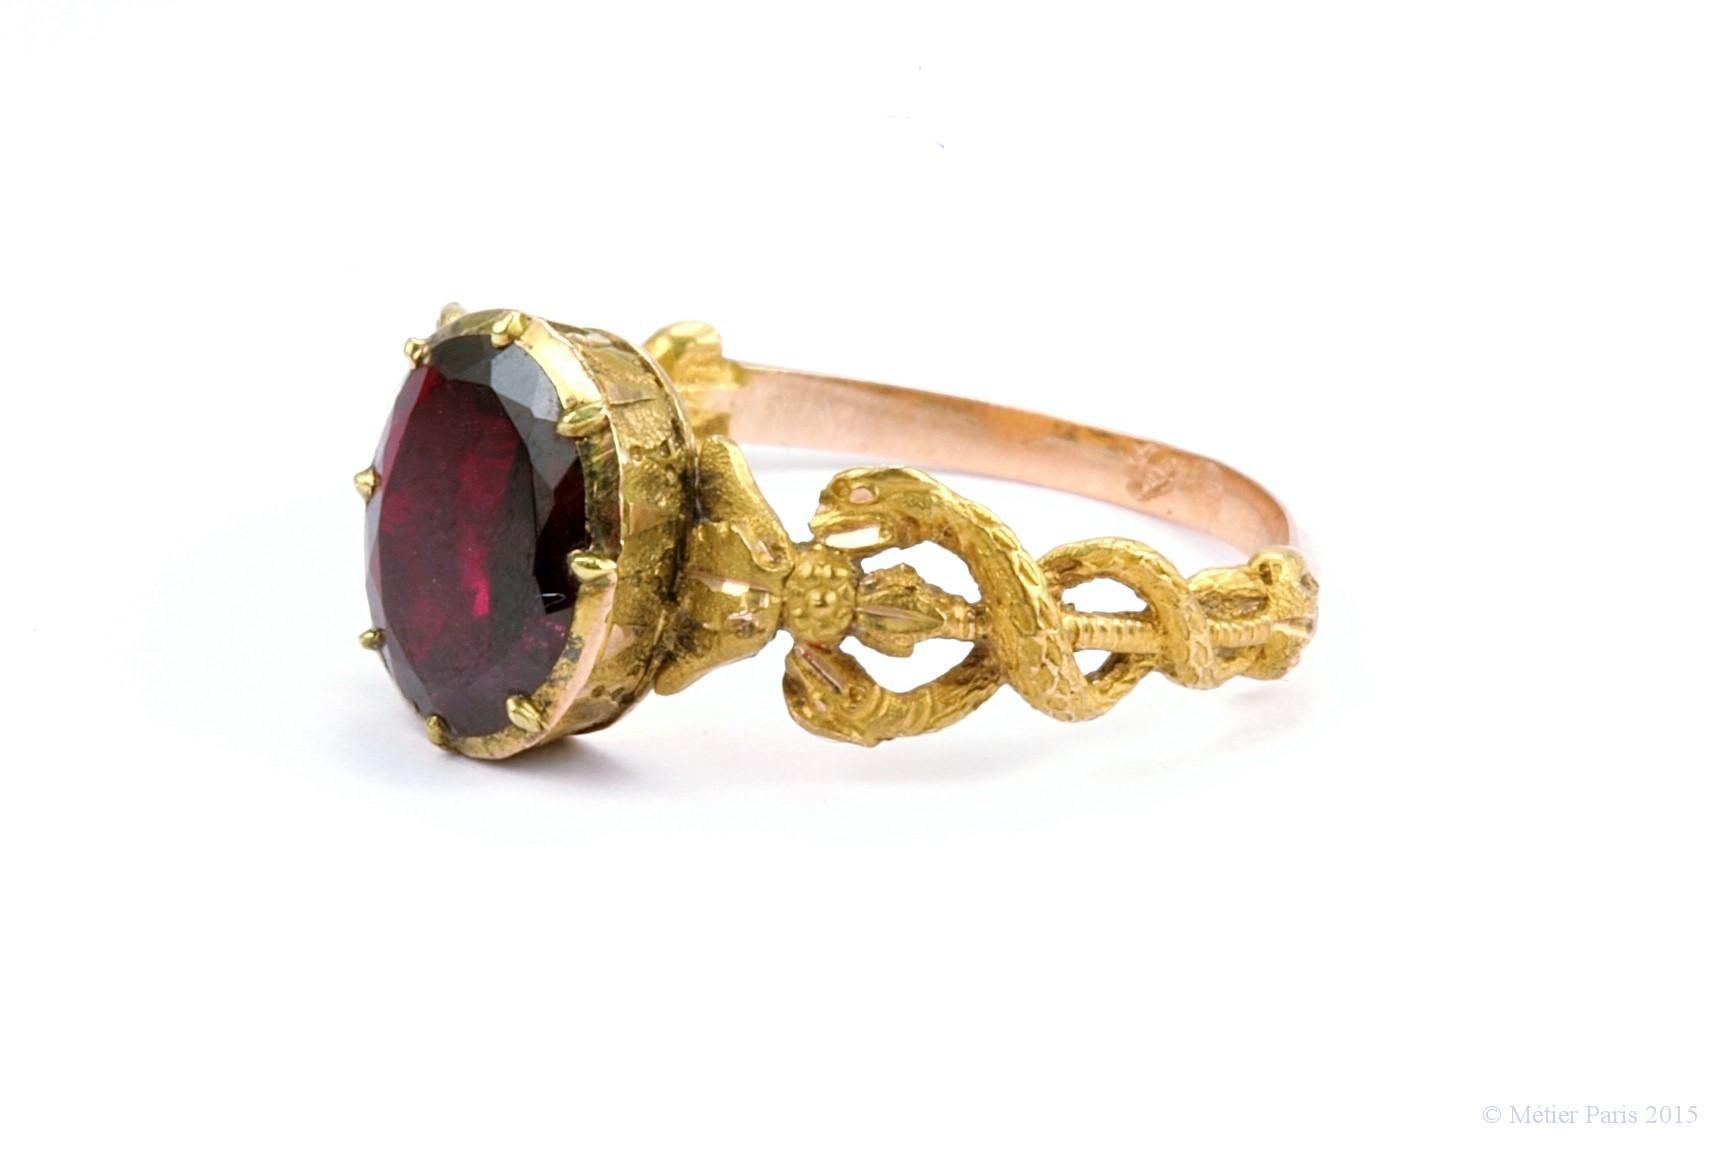 urns ringe as asche unique cremation ashes ring symbolic from rings golden goud gold memorial funeral crematie or